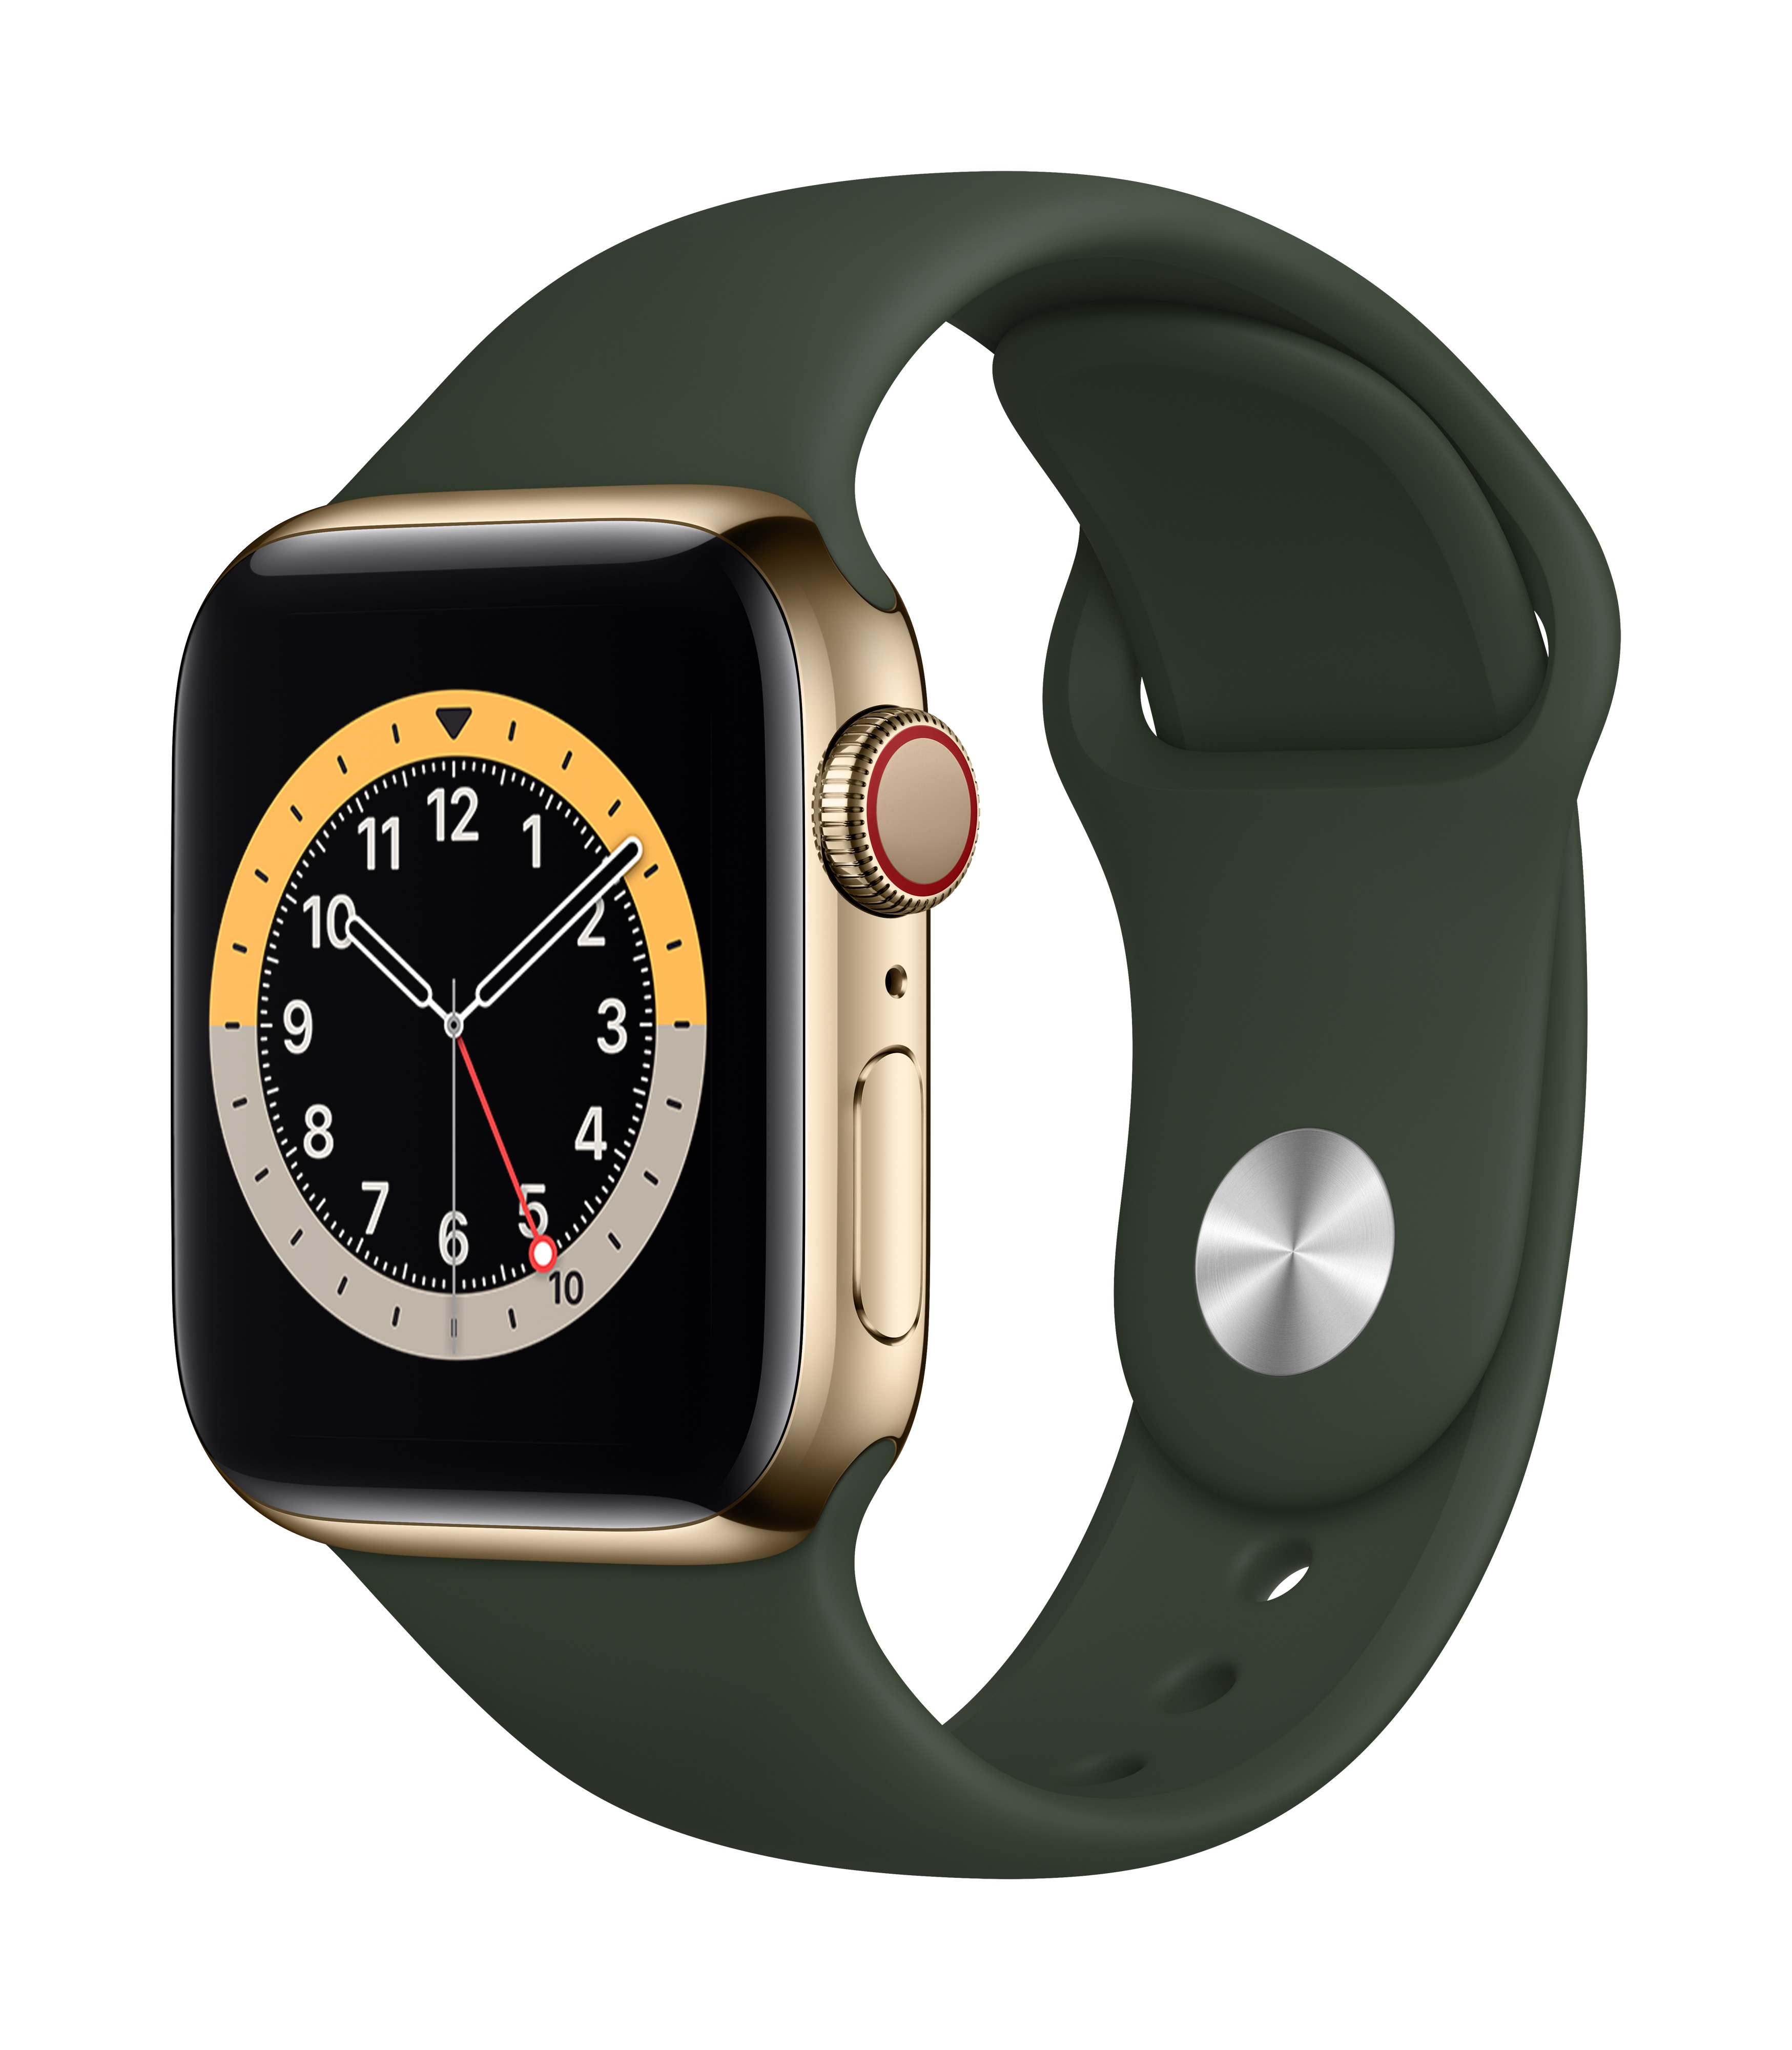 Apple Watch Series 6 GPS + Cellular 40mm Gold Stainless Steel Case w/ Cyprus Green Sport Band at Small Dog Electronics